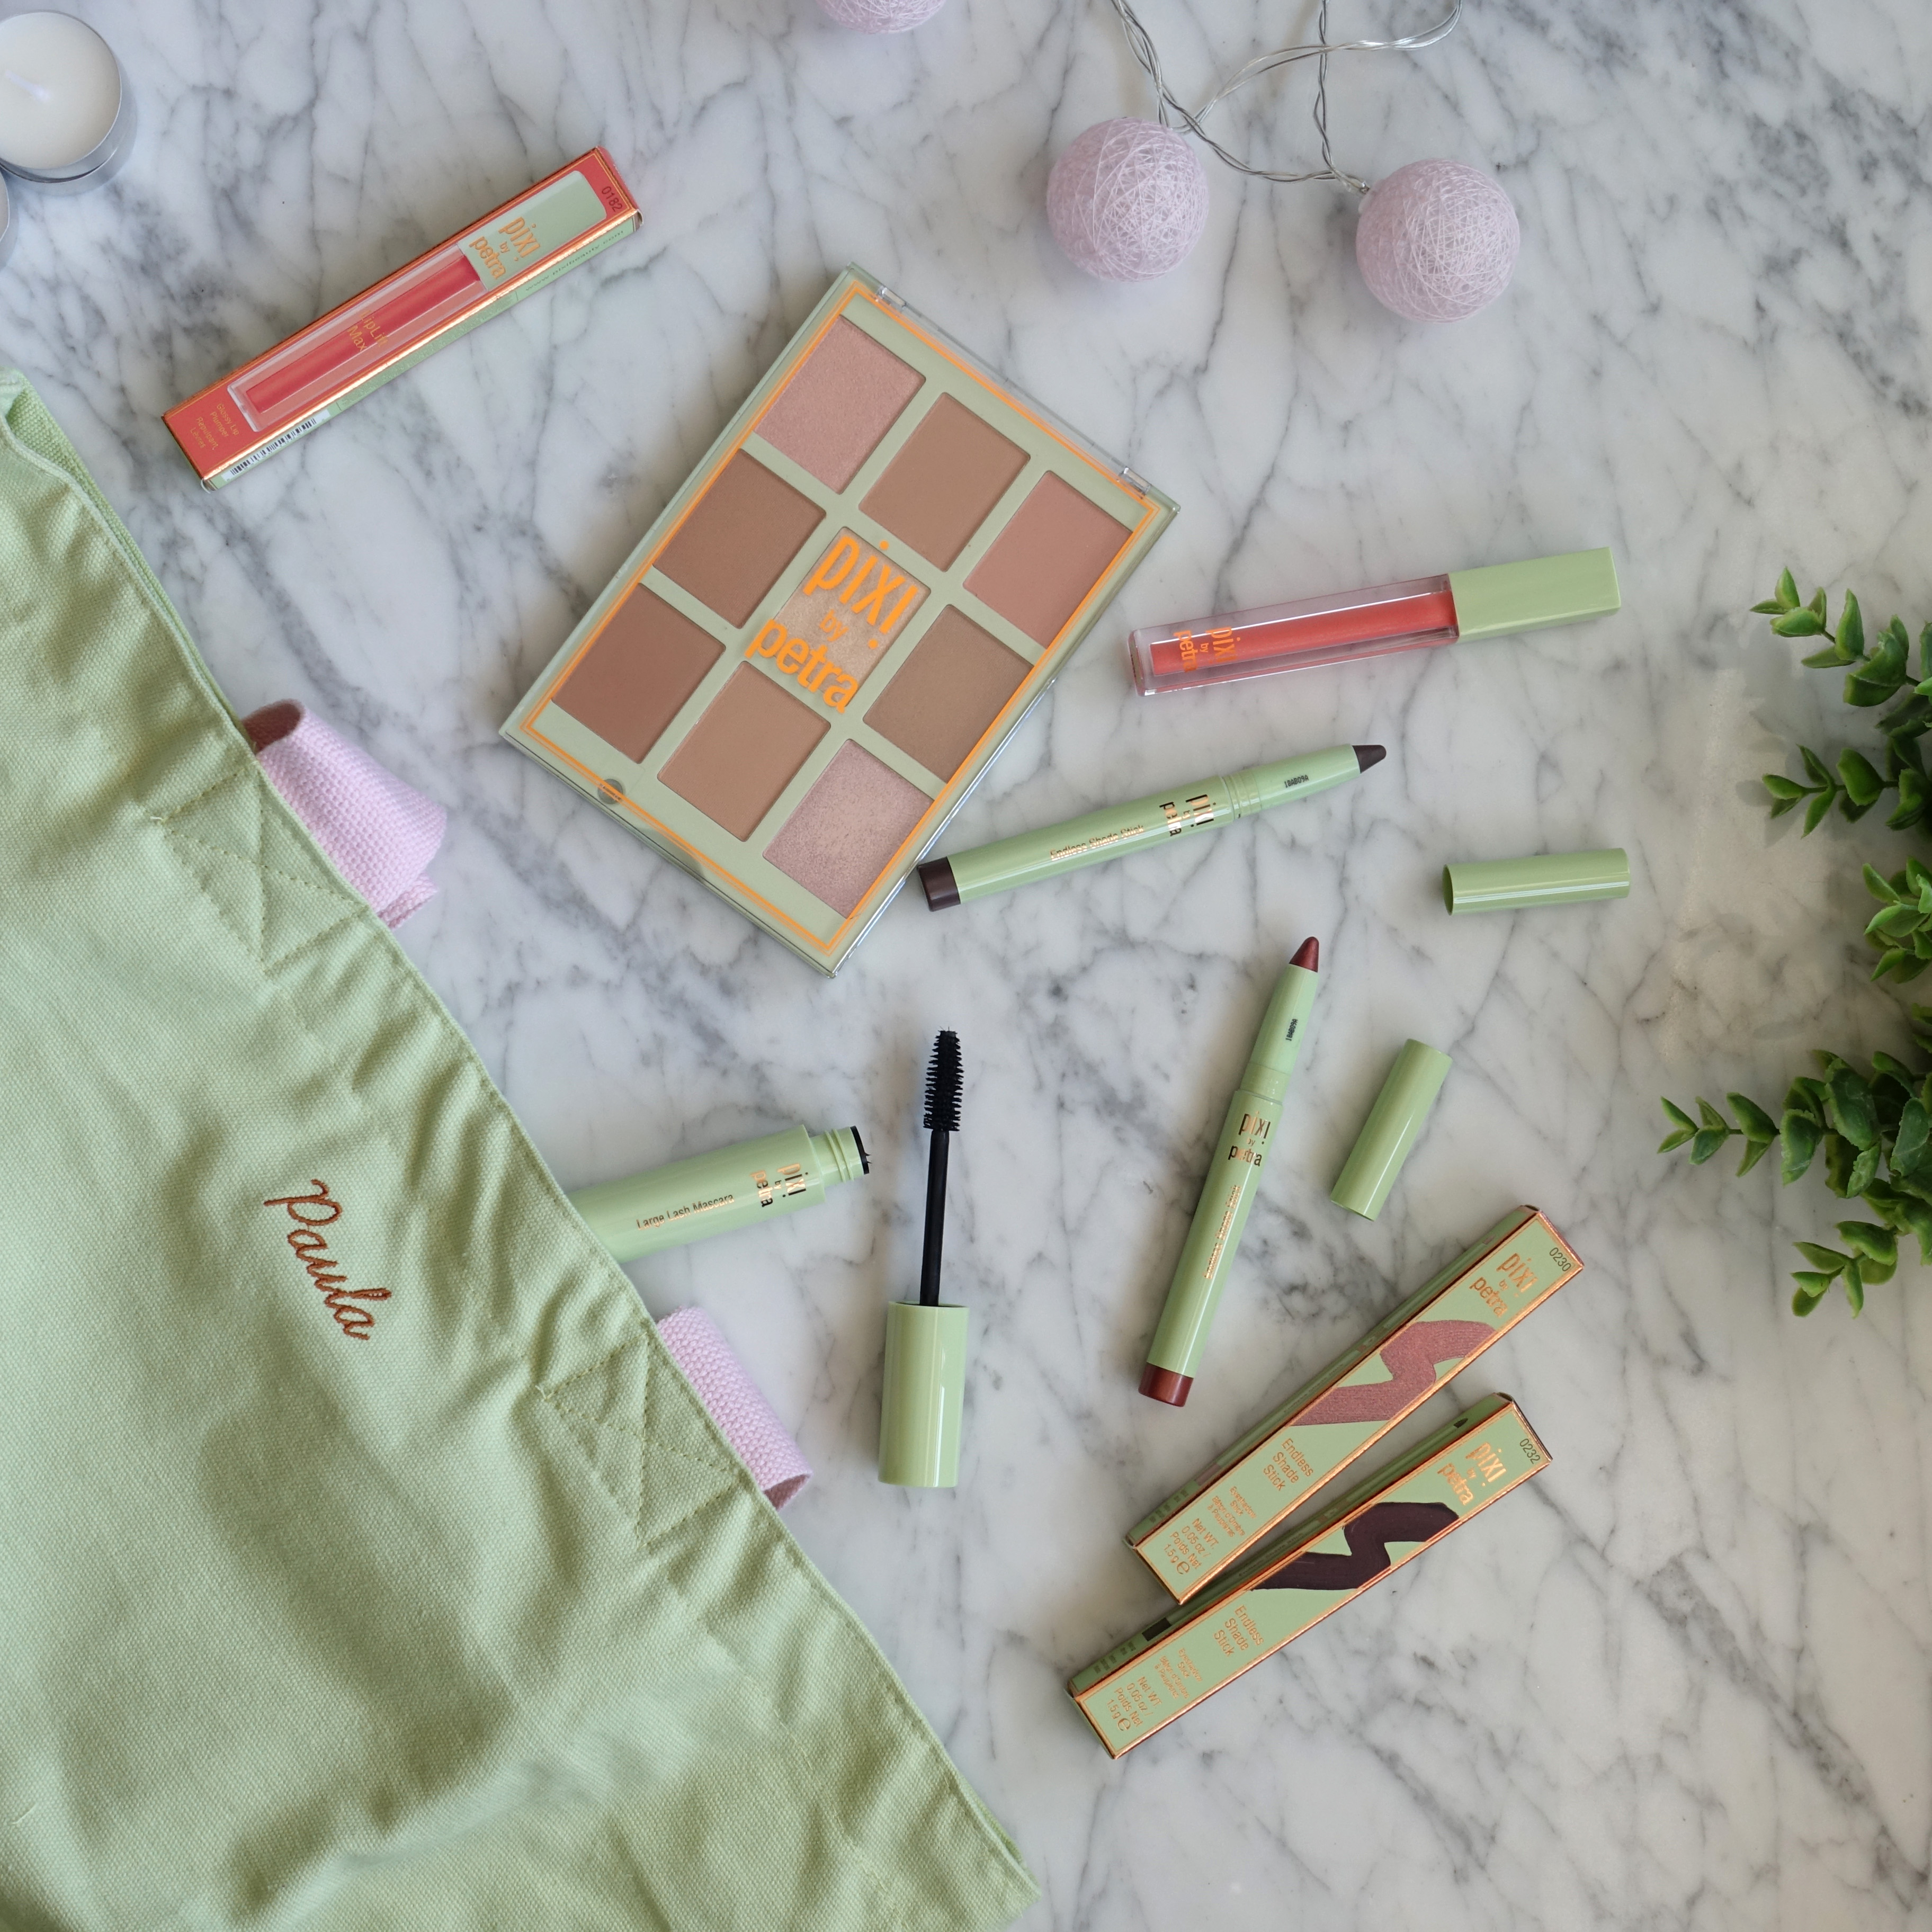 Pixi by Petra's Escape & Let's GLOW! Collection - Shade Sticks, Gloss, Mascara, Palette and Bag